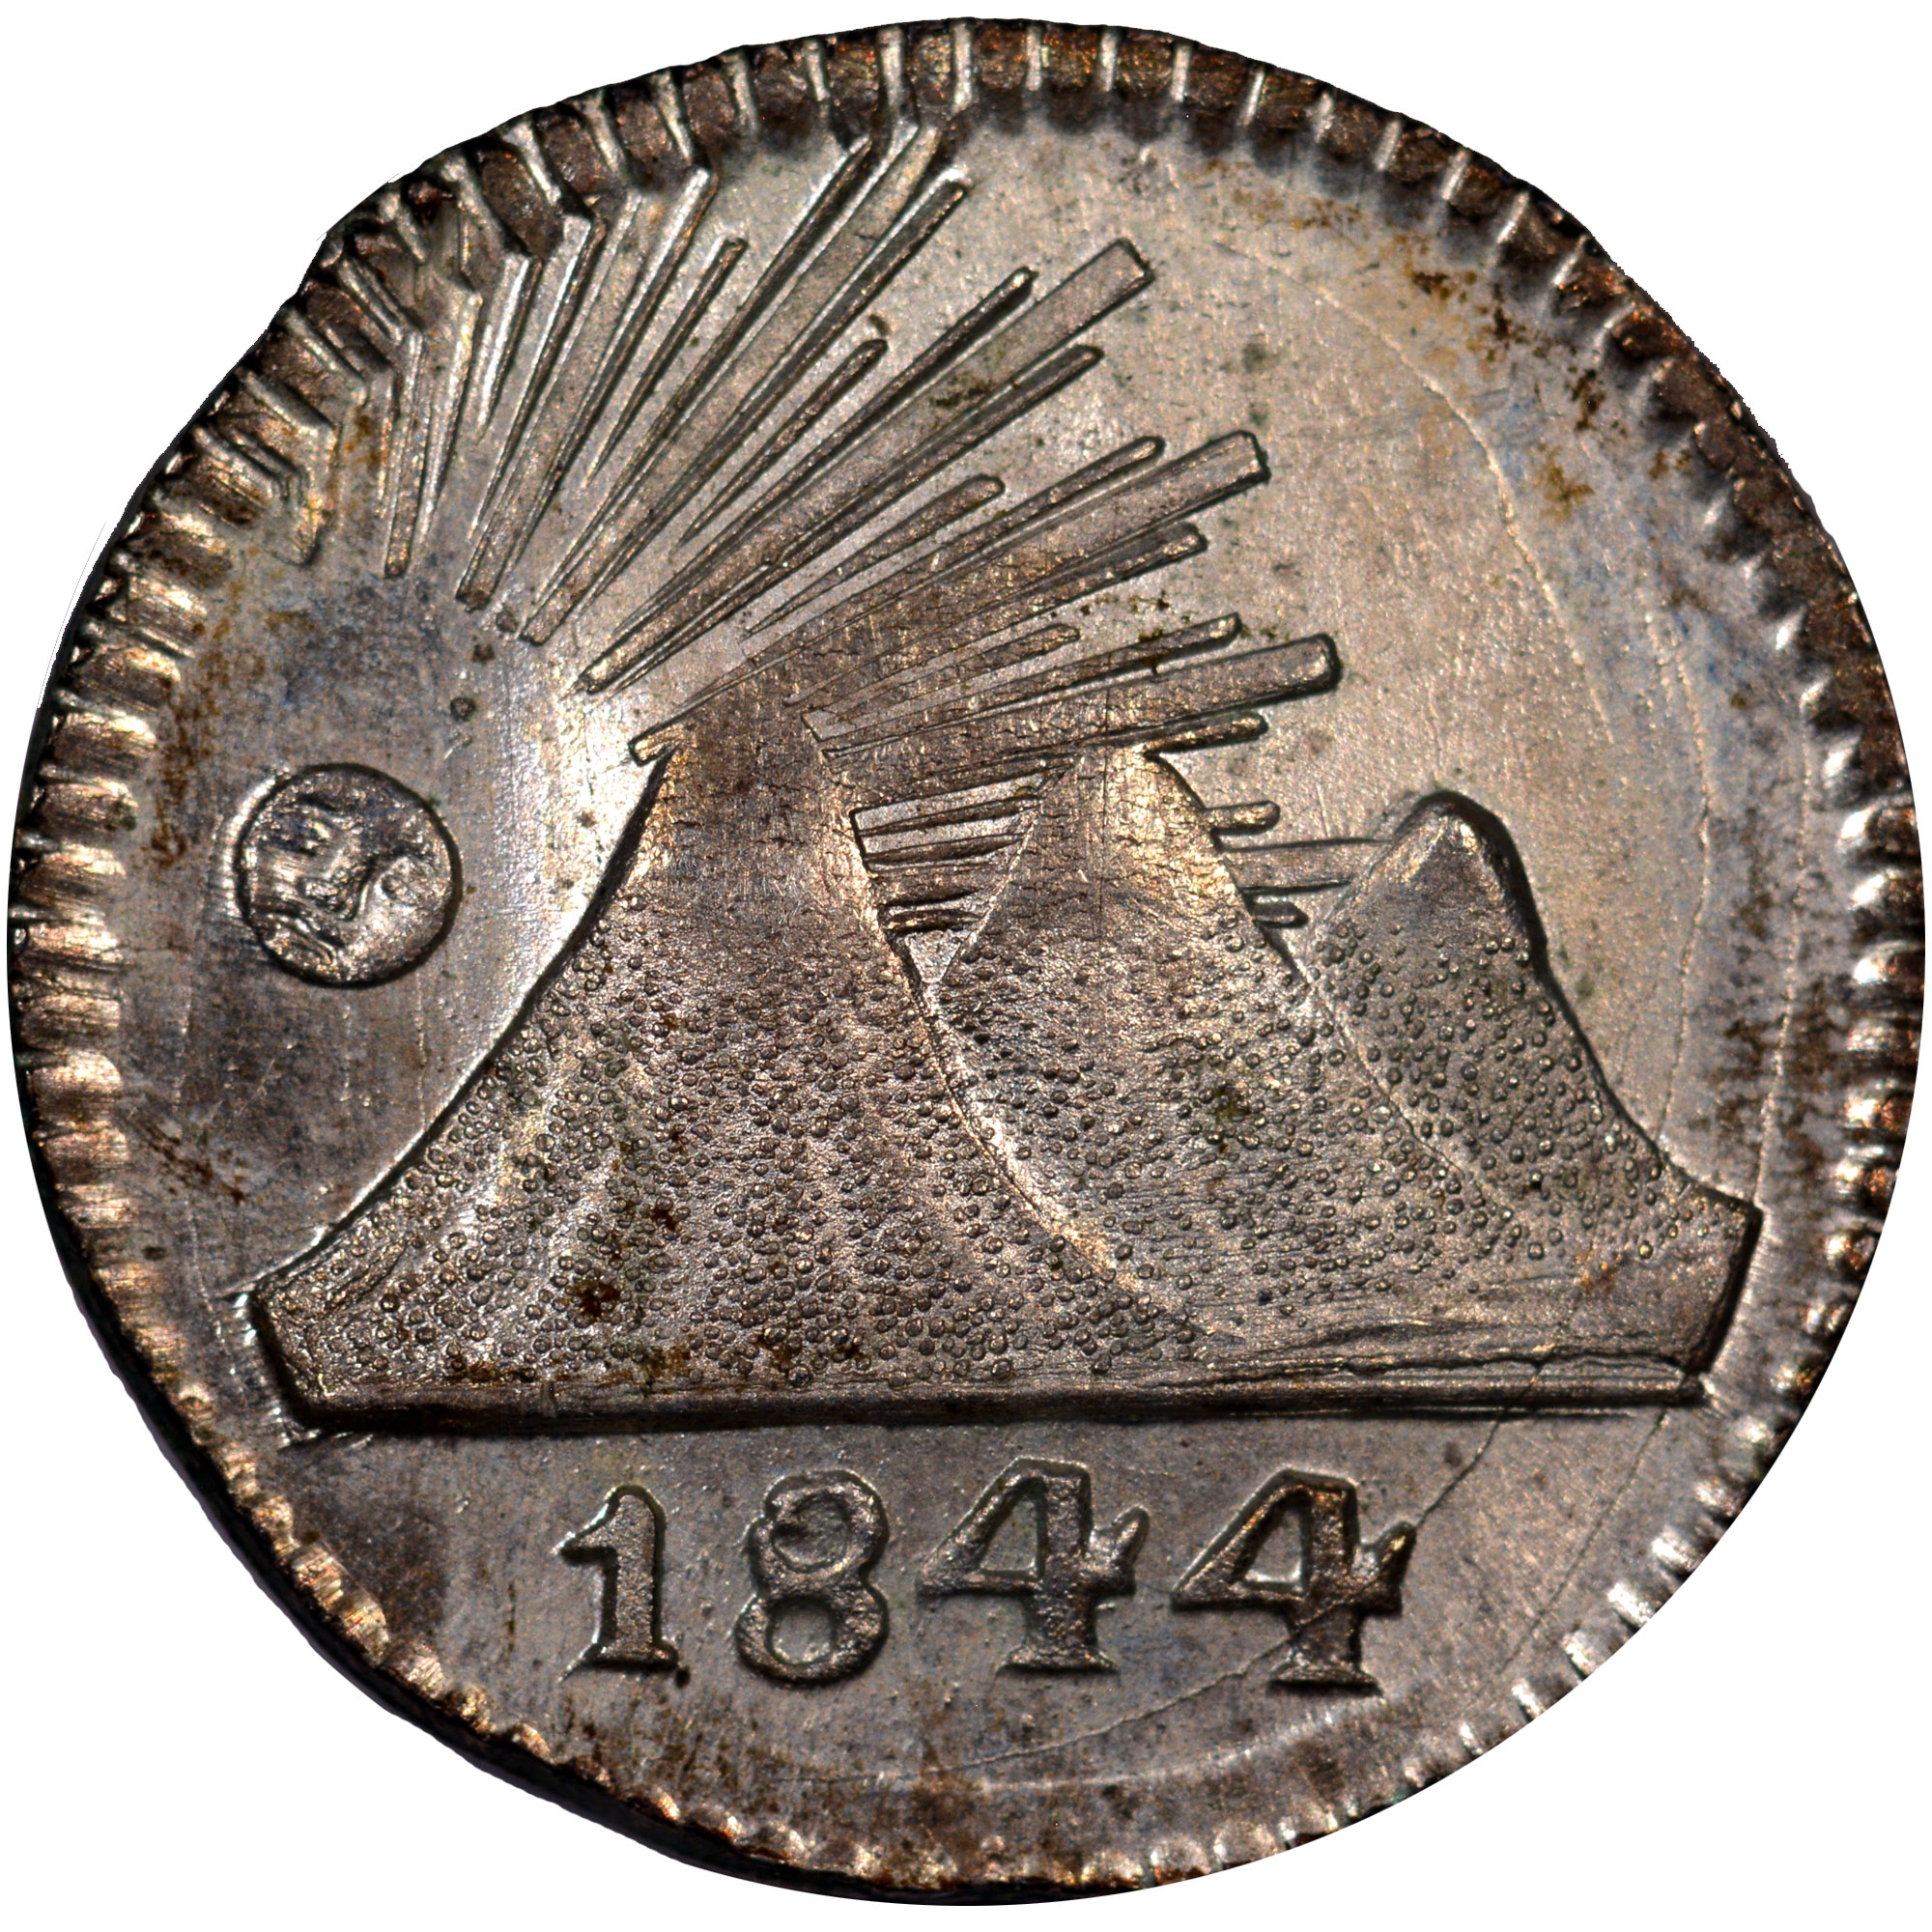 1824-1851 Central American Republic 1/4 Real obverse